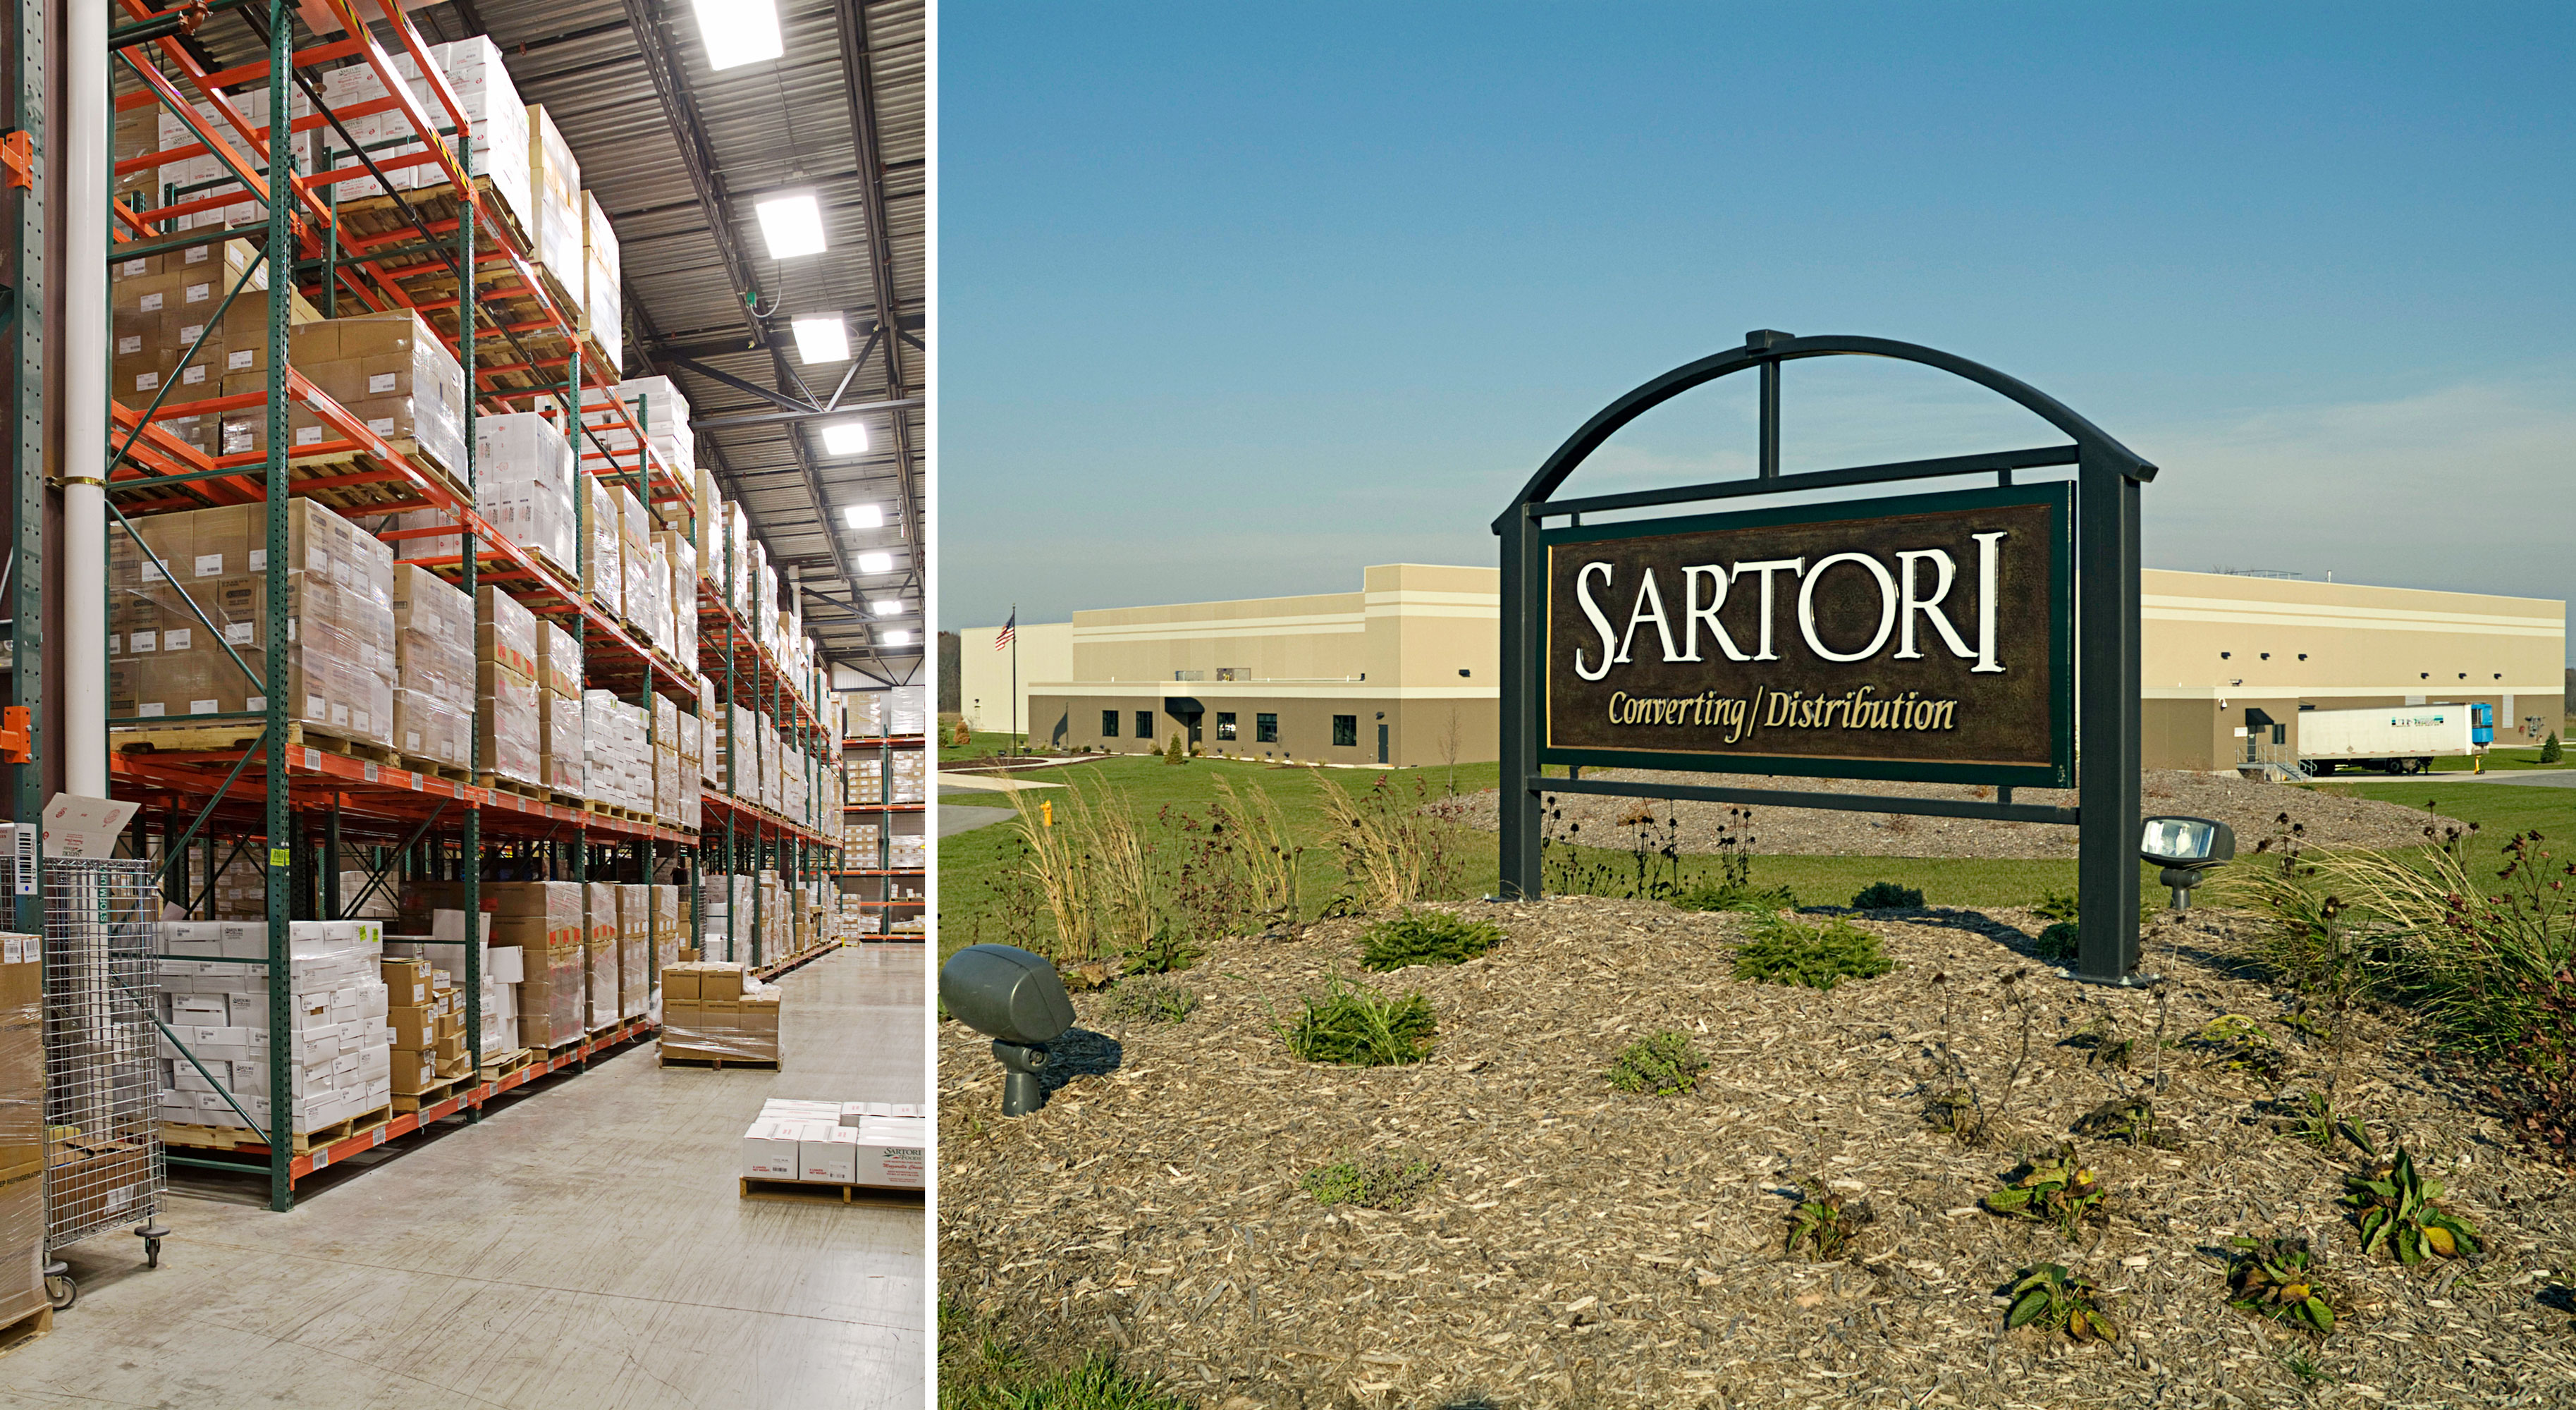 Sartori Cheese Conversion Plant Industrial Manufacturing Building Construction Manager Commercial Project General Contractor